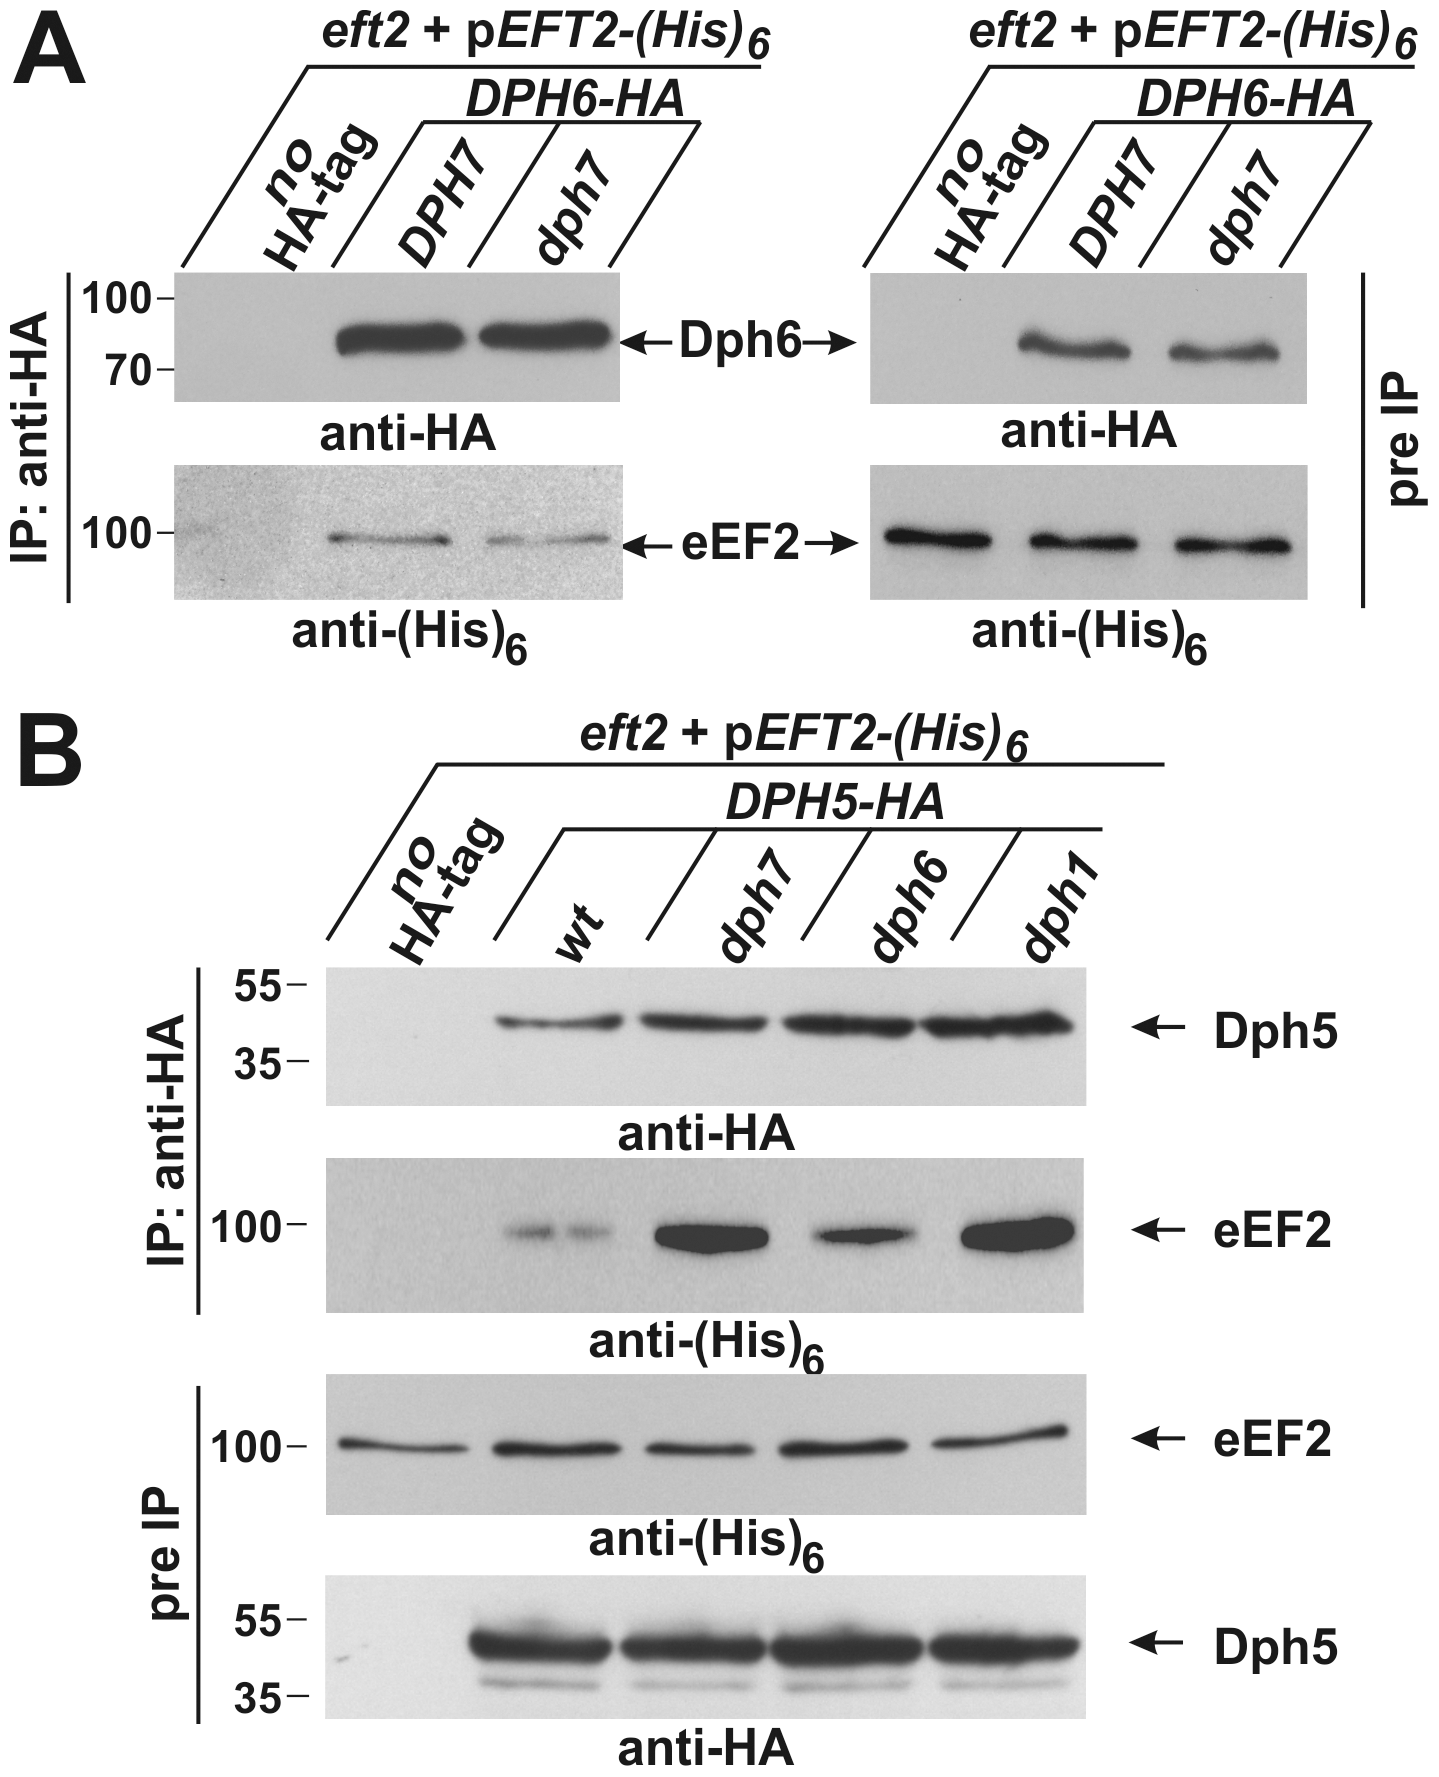 Co-immune precipitations reveal eEF2 interactions with Dph6 and Dph5.